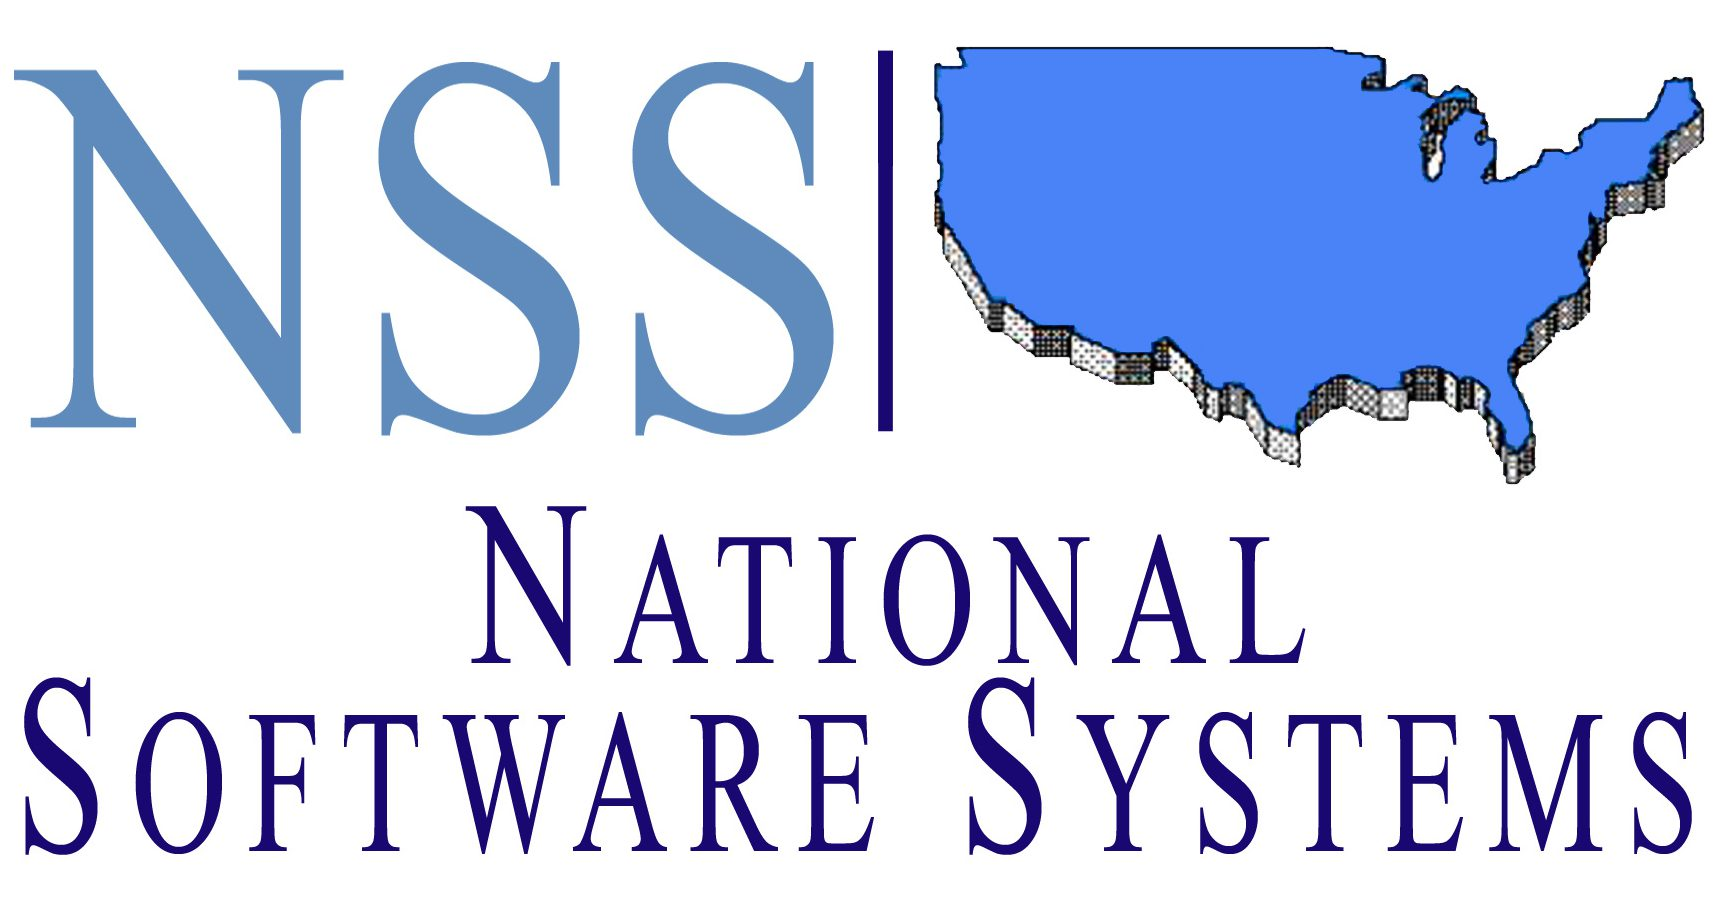 National Software Systems